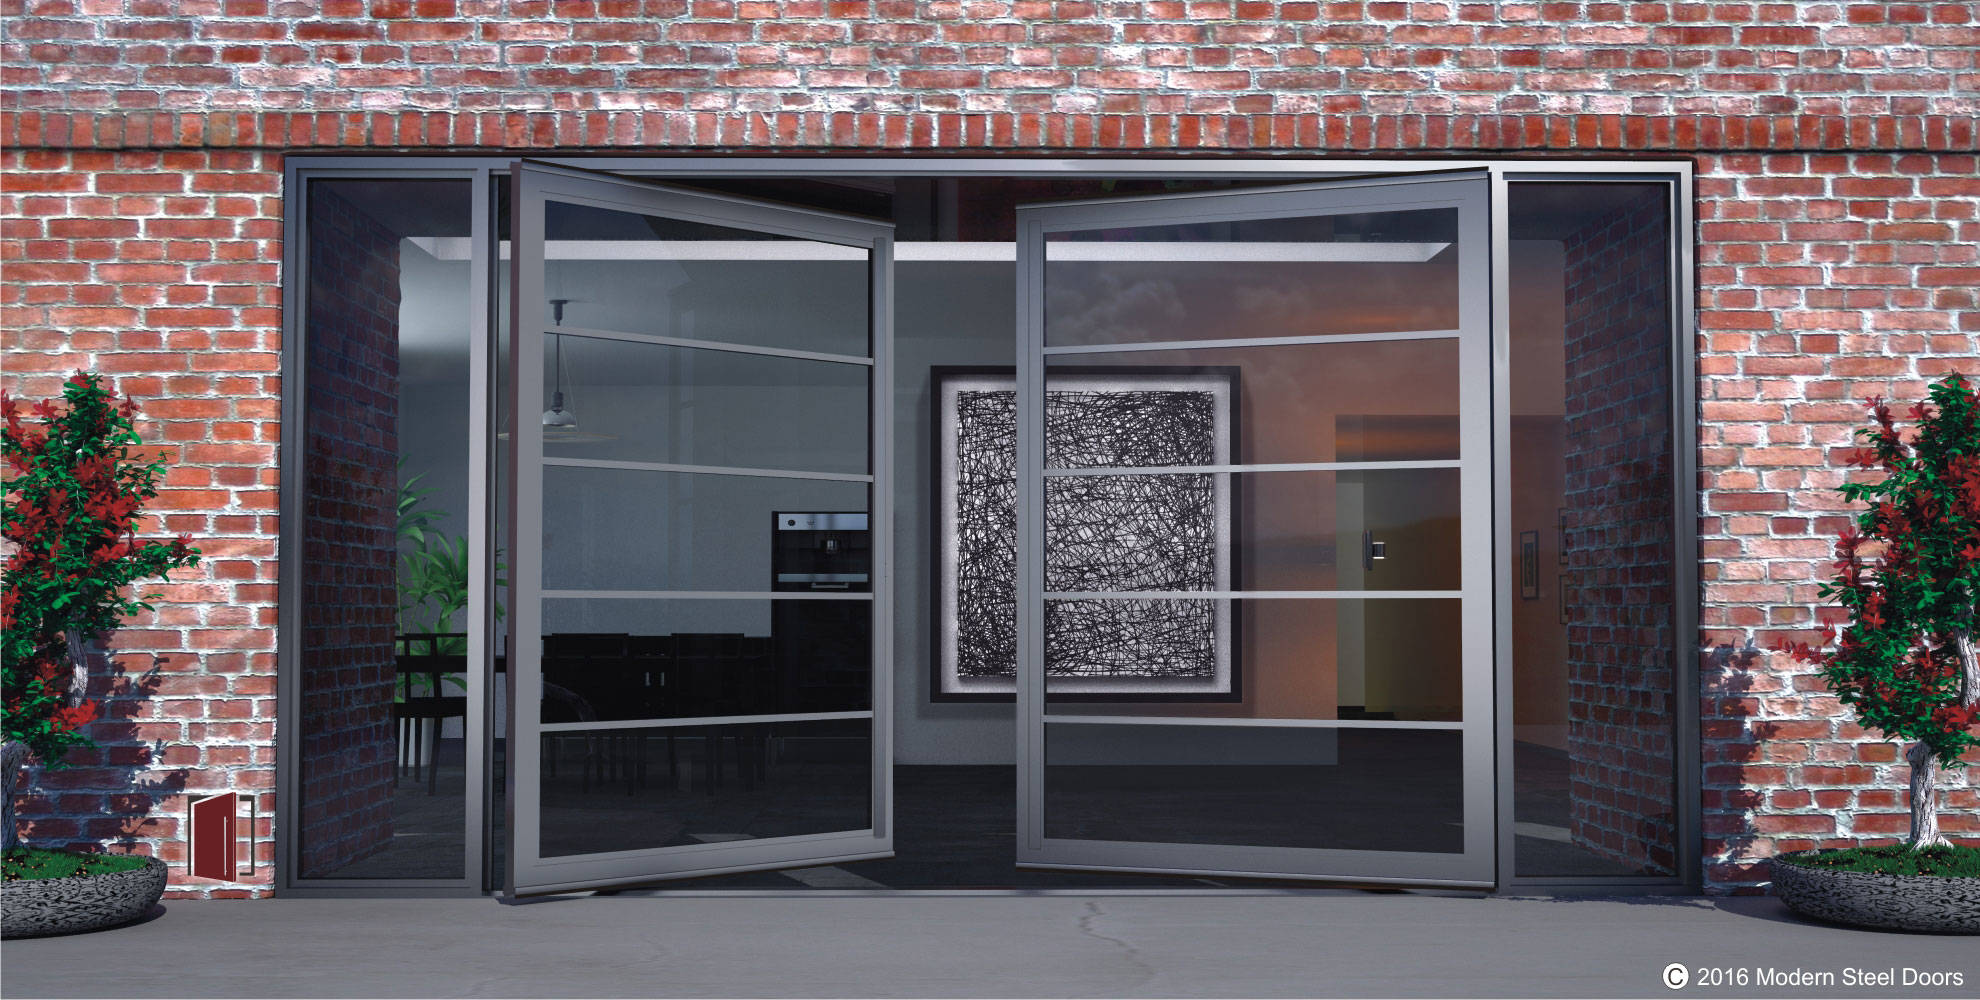 Exterior glass doors, front glass doors, pivoting steel doors with segmented glass panels double opening.